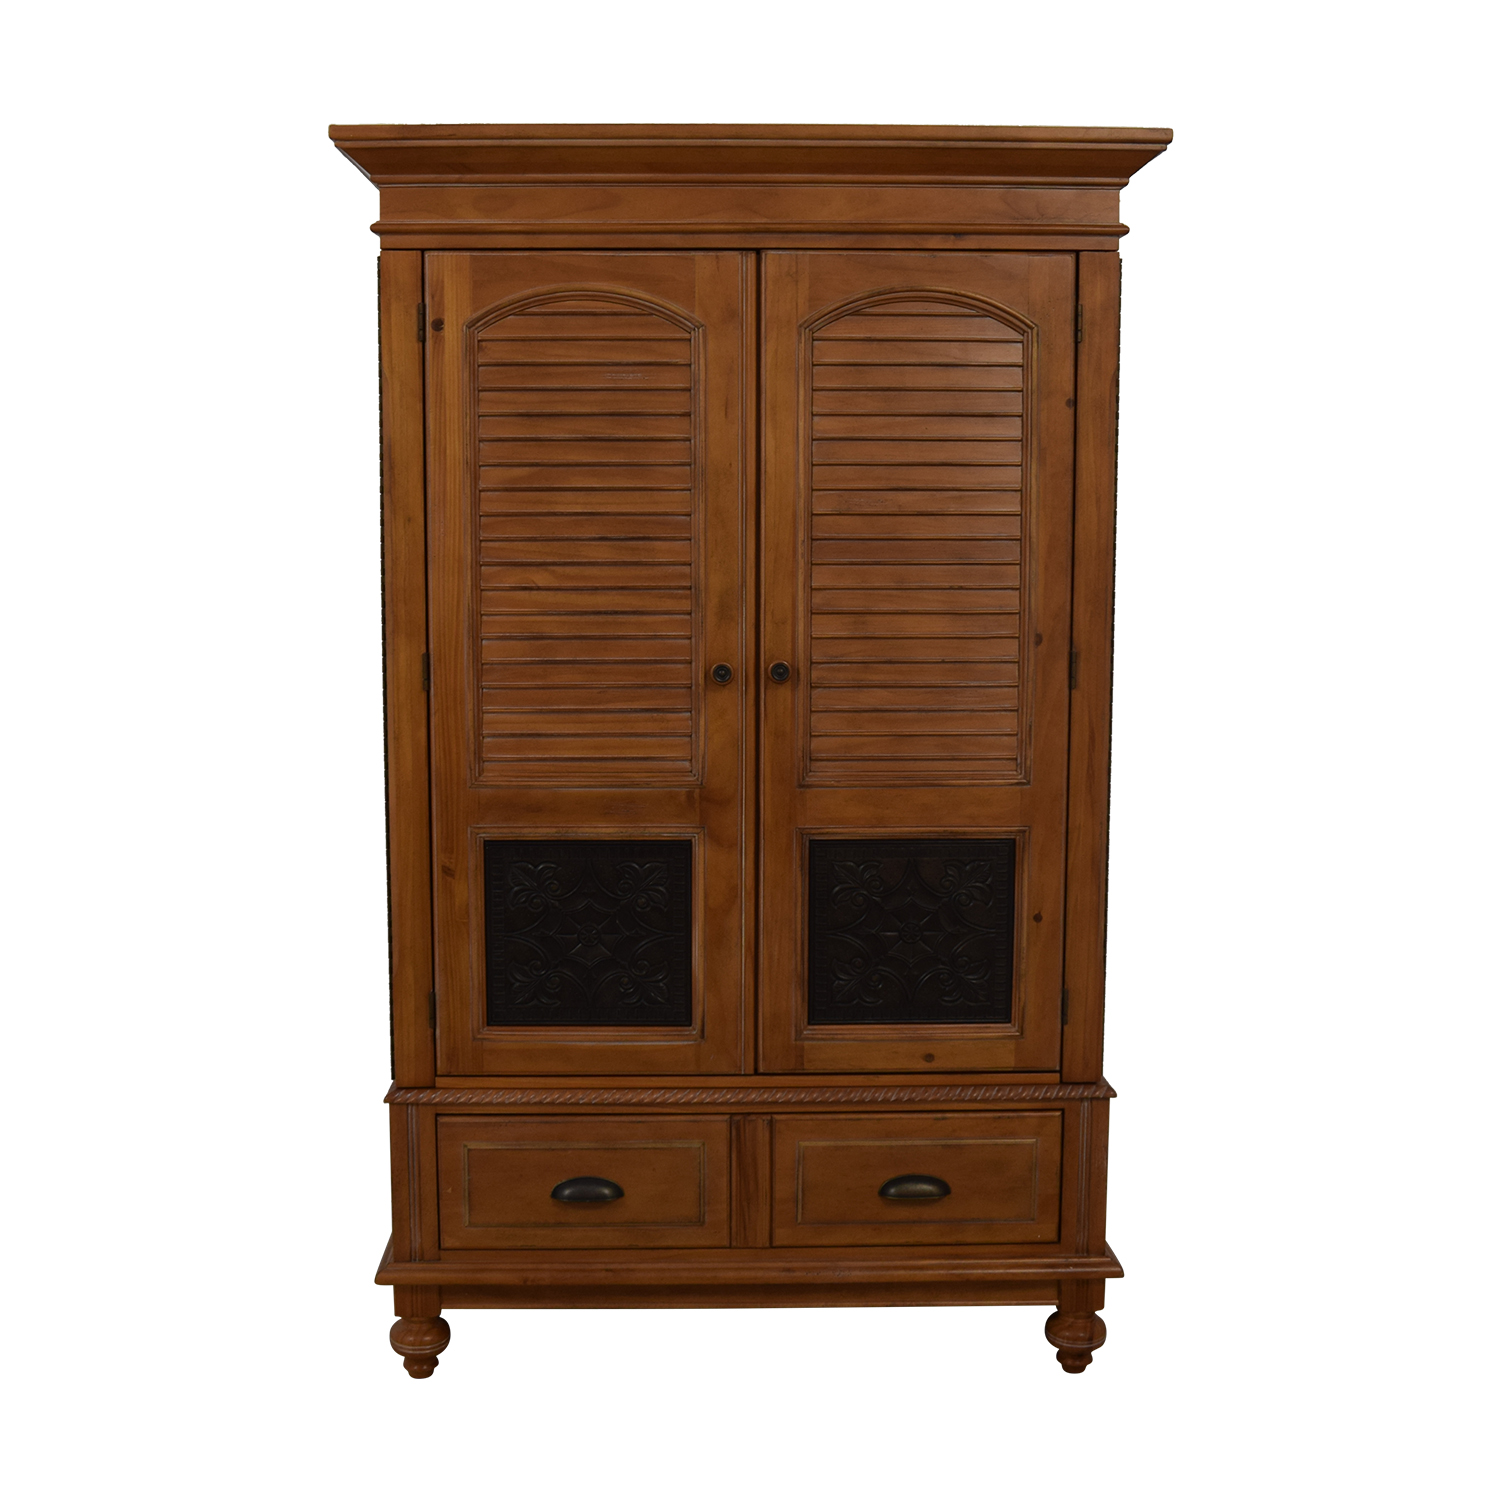 A.R.T. Furniture A.R.T. Furniture Four-Drawer Wood Wardrobe Armoire nj